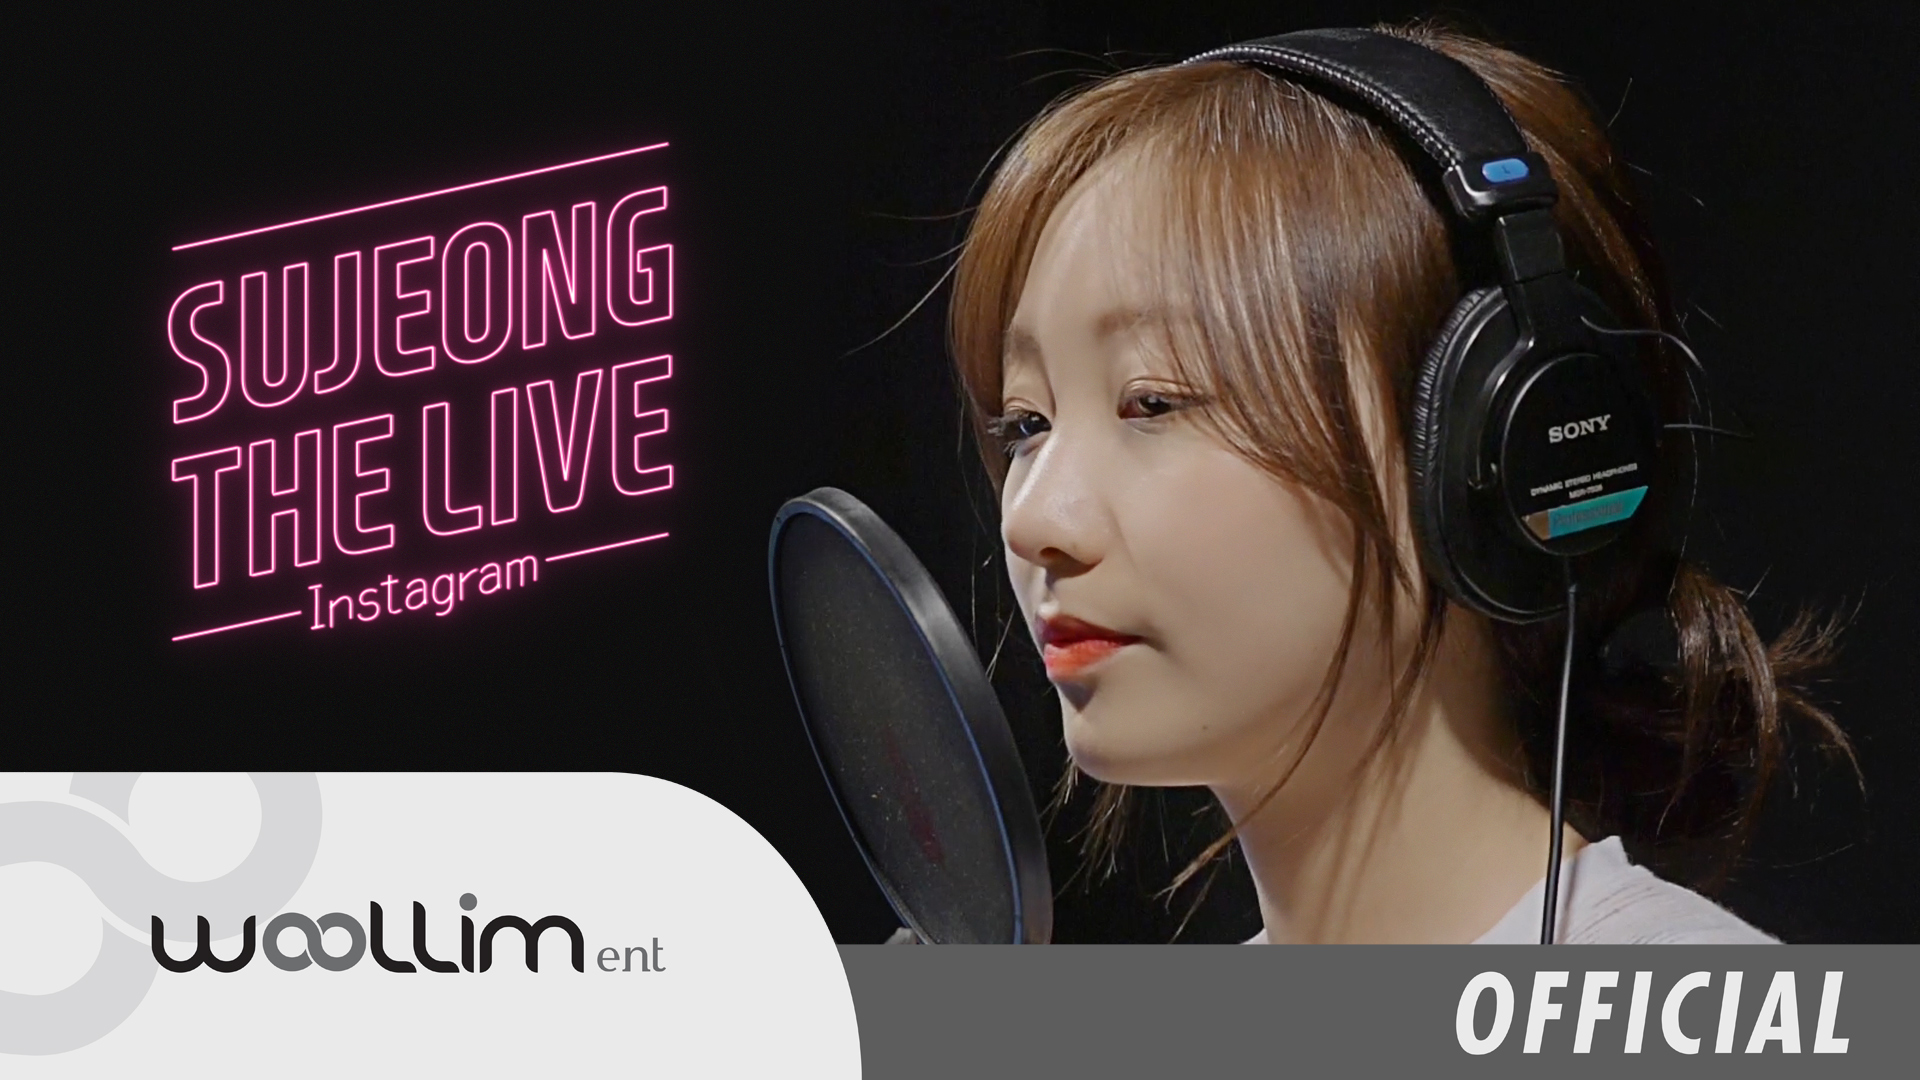 러블리즈(Lovelyz) SUJEONG THE LIVE '딘-Instagram'